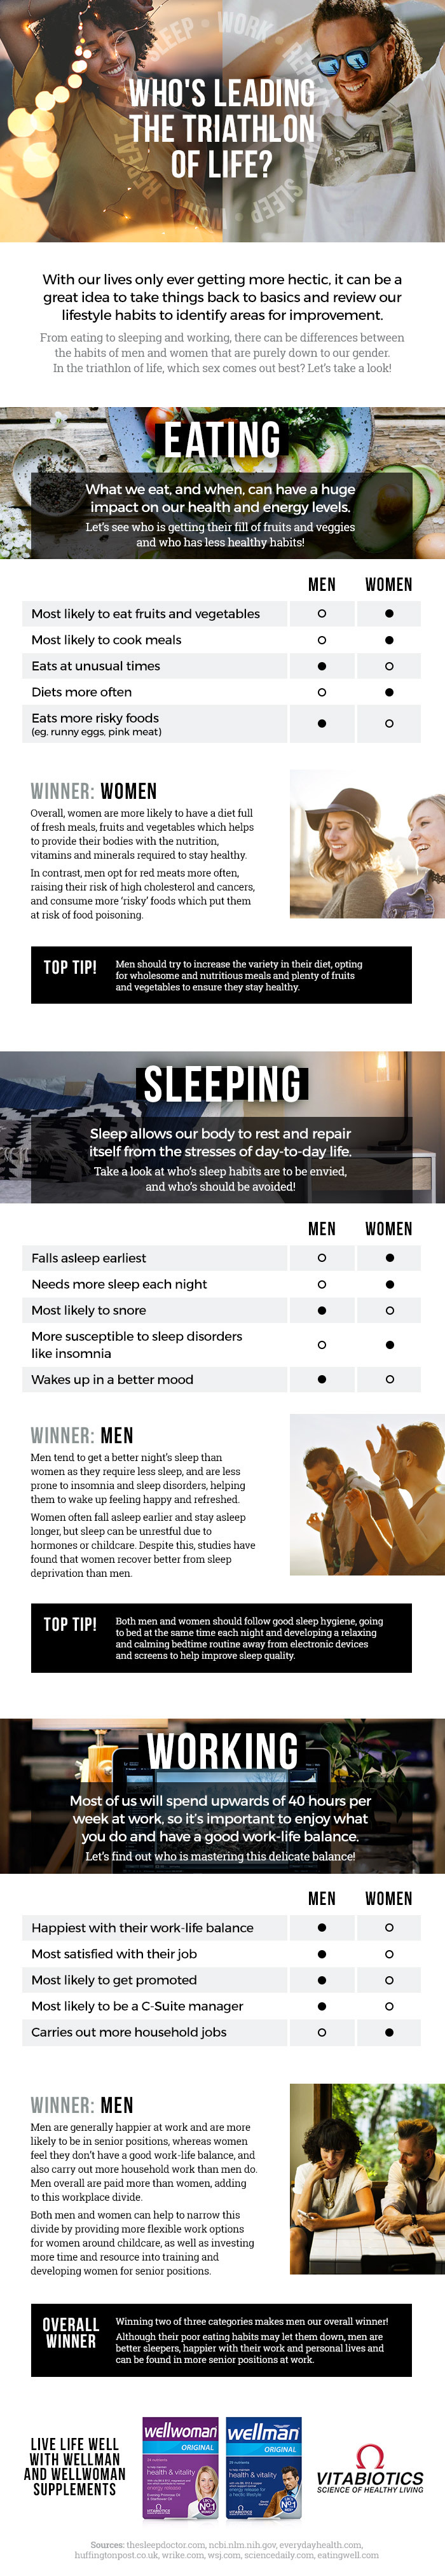 Who's leading the triathlon of life infographic